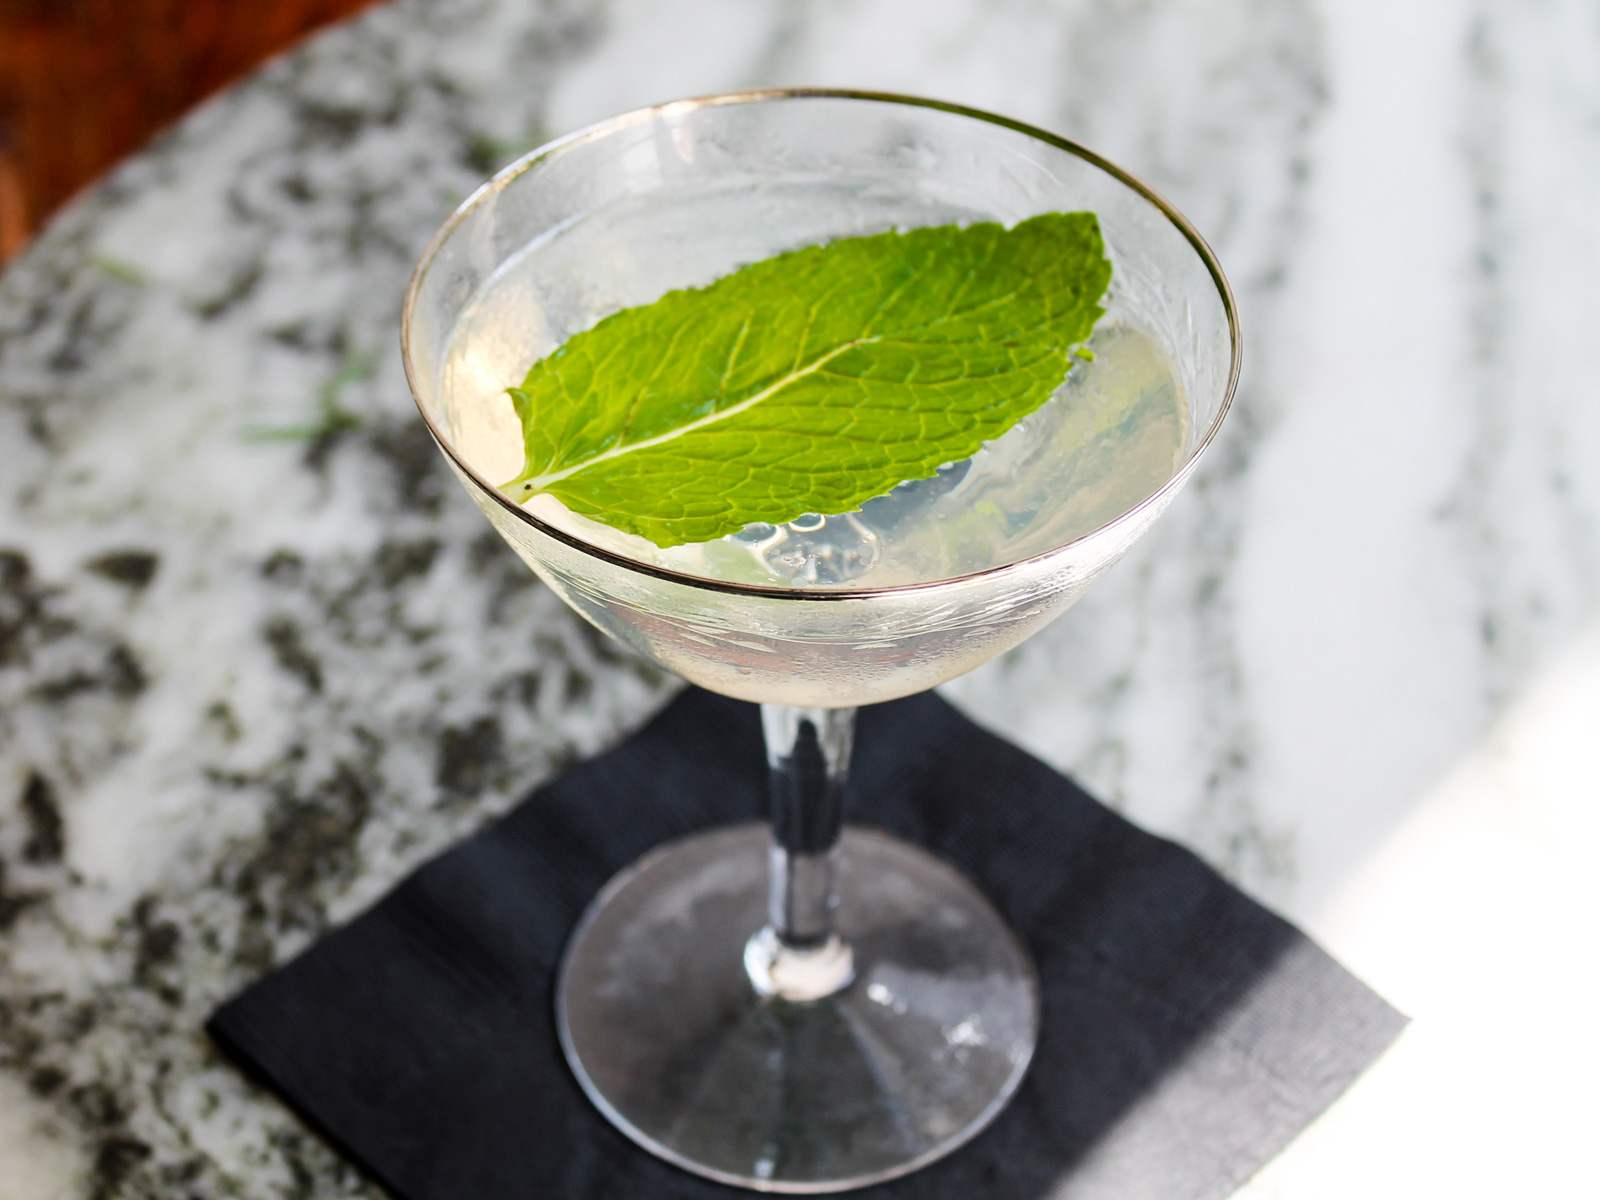 A Well Tempered Cocktail